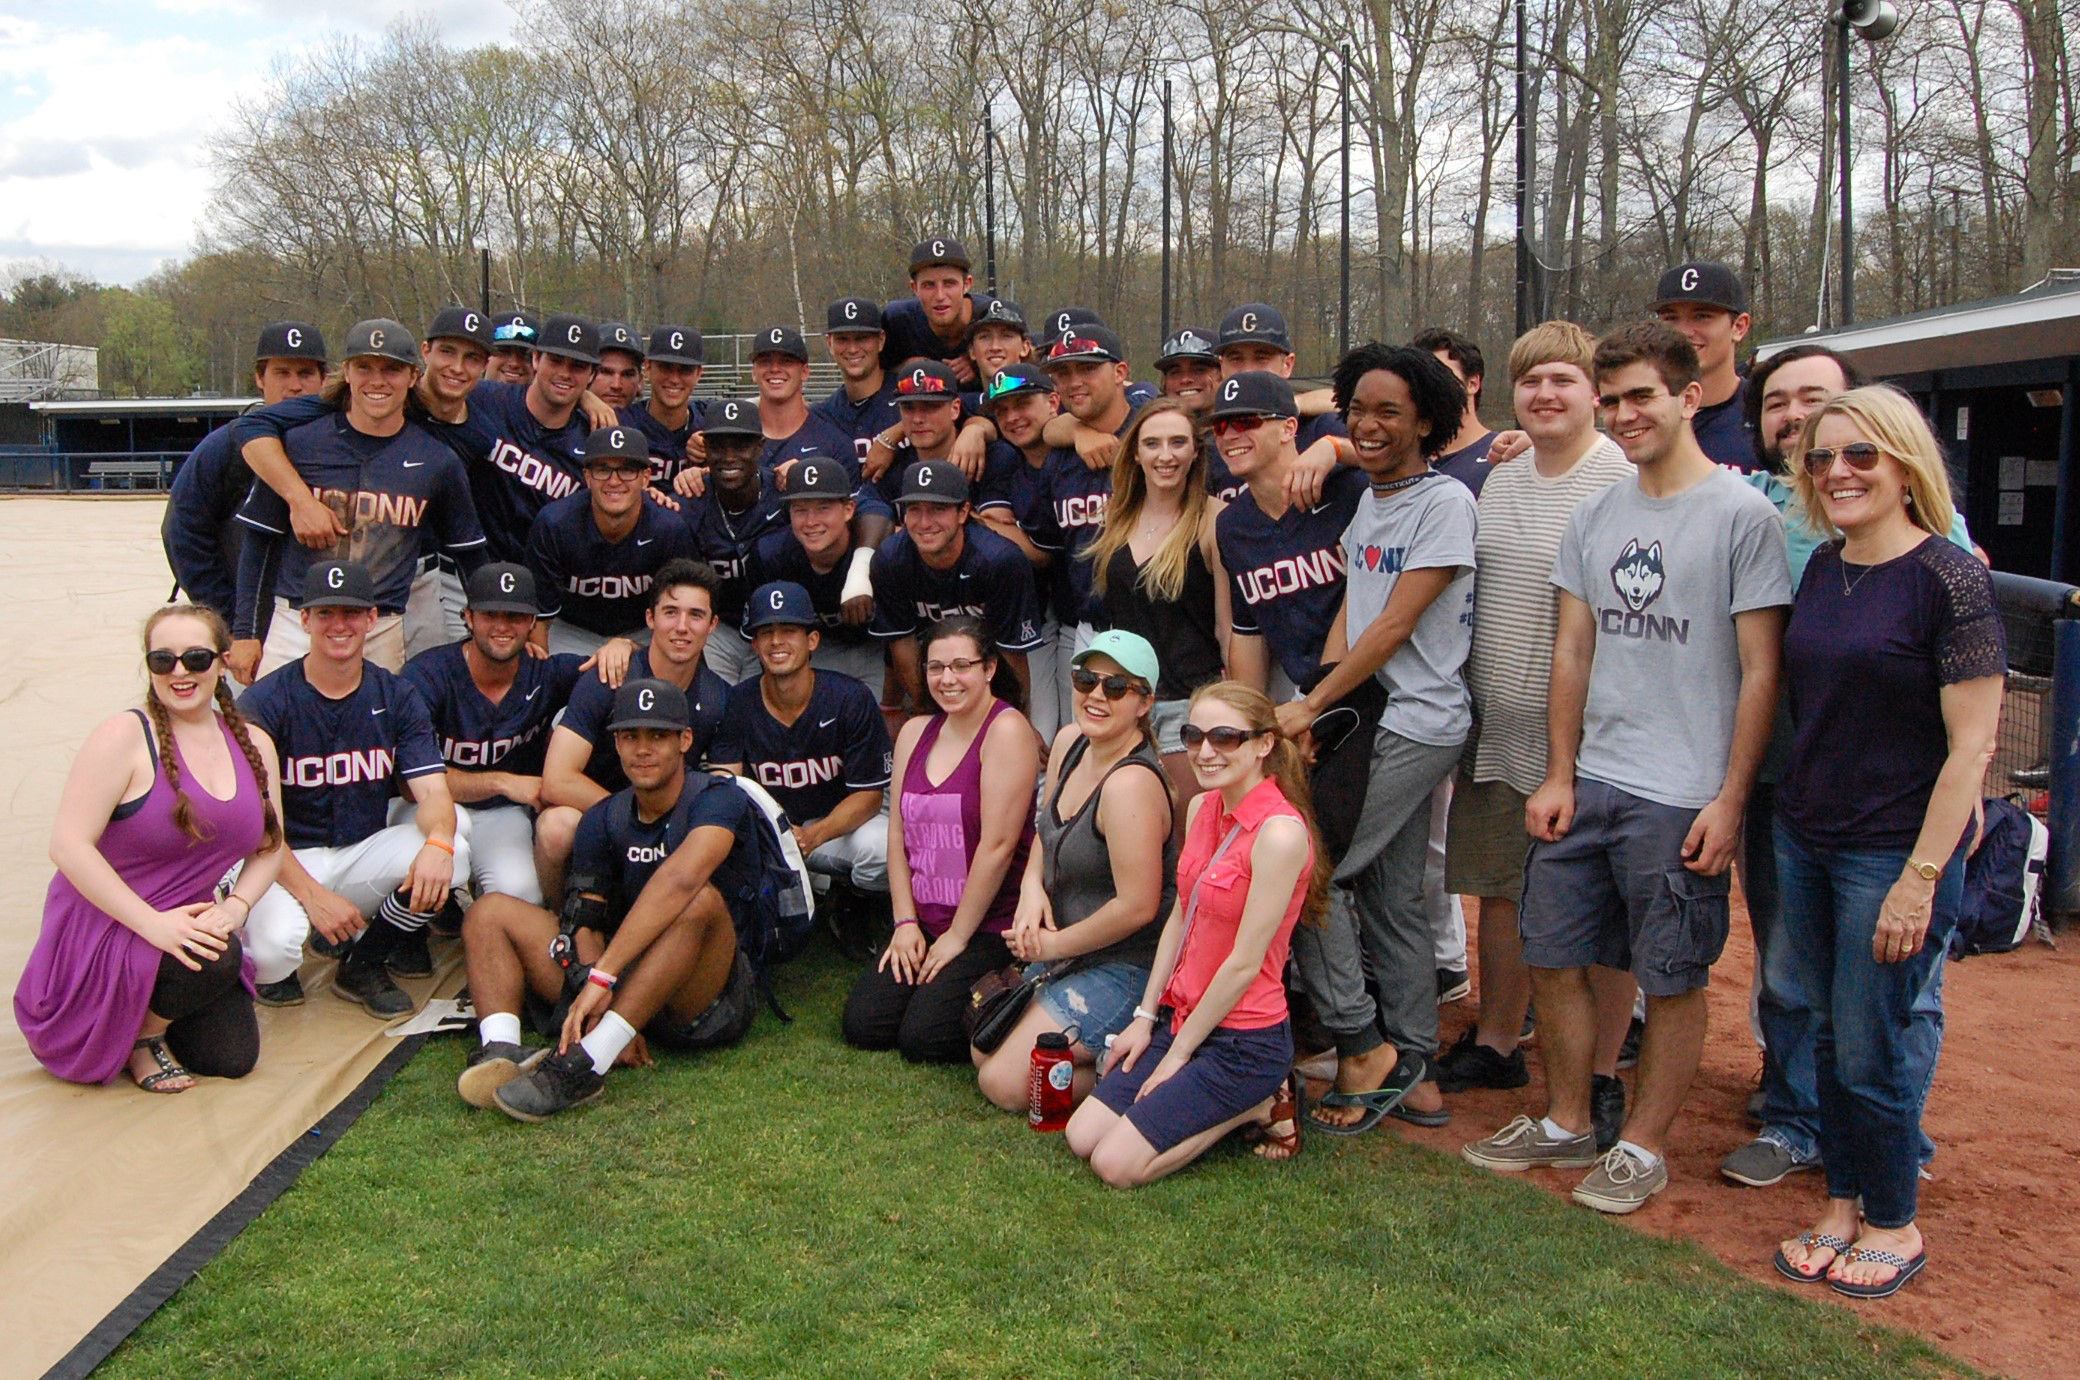 Music Students And The Baseball Team Gathered For A Team Photo On The Field  After The